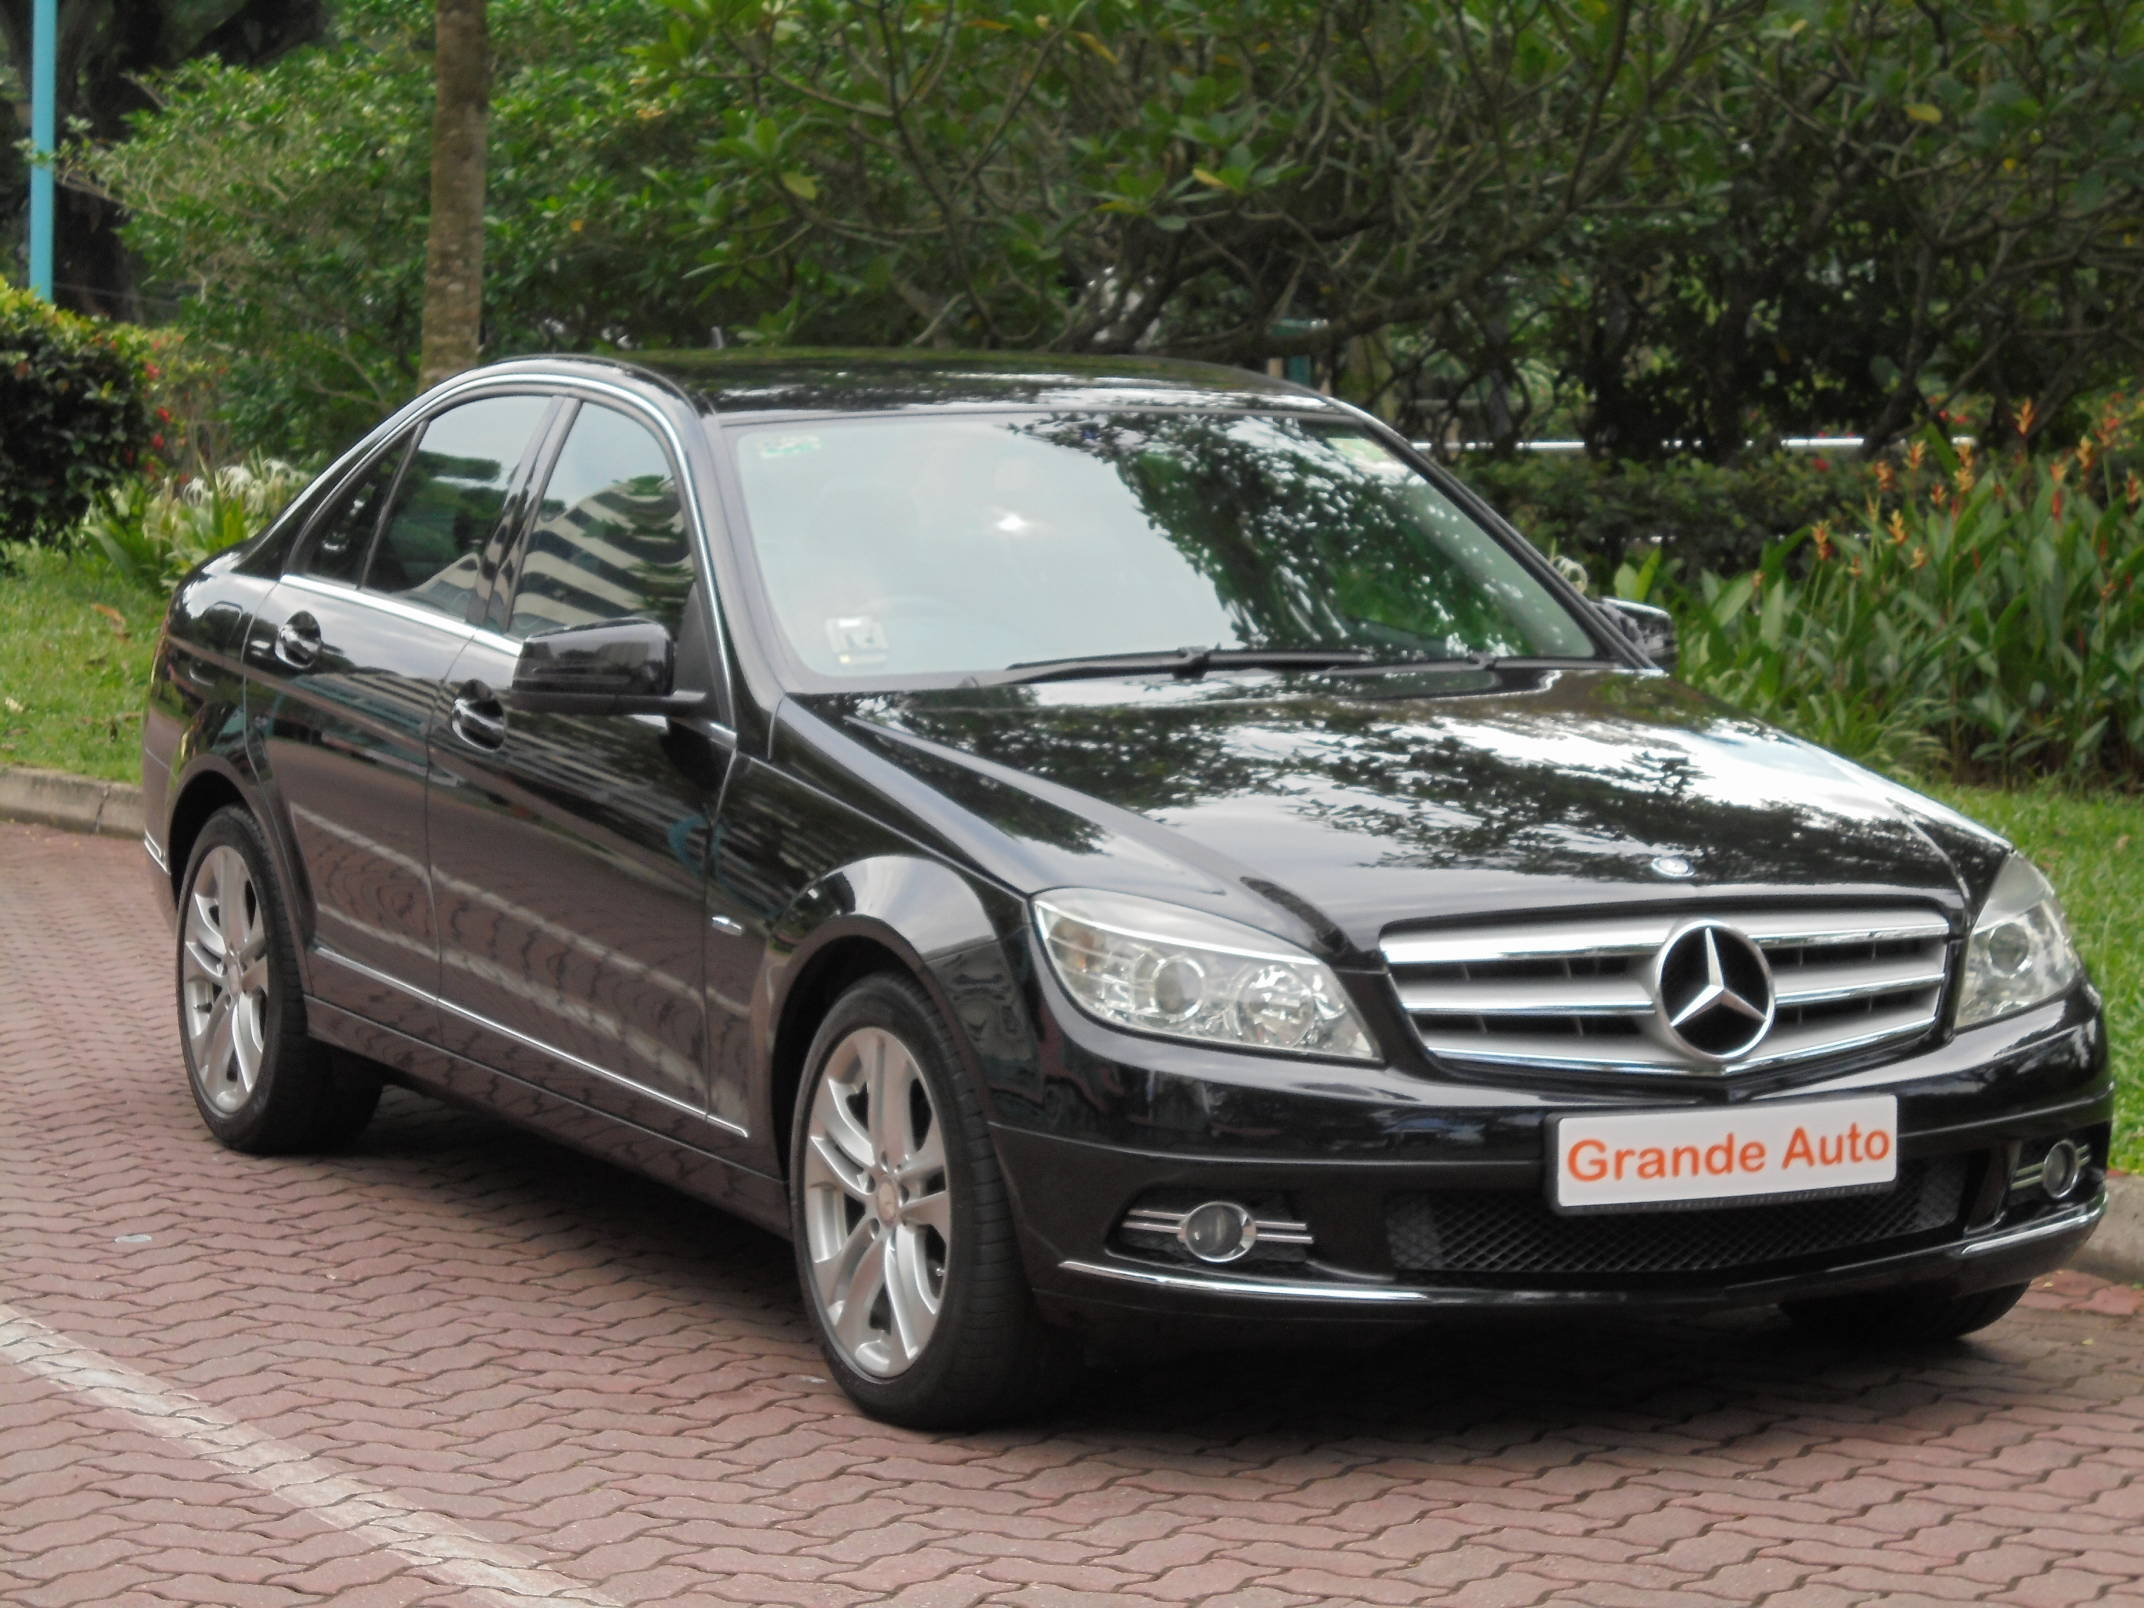 Grande auto credit pte ltd for Mercedes benz credit